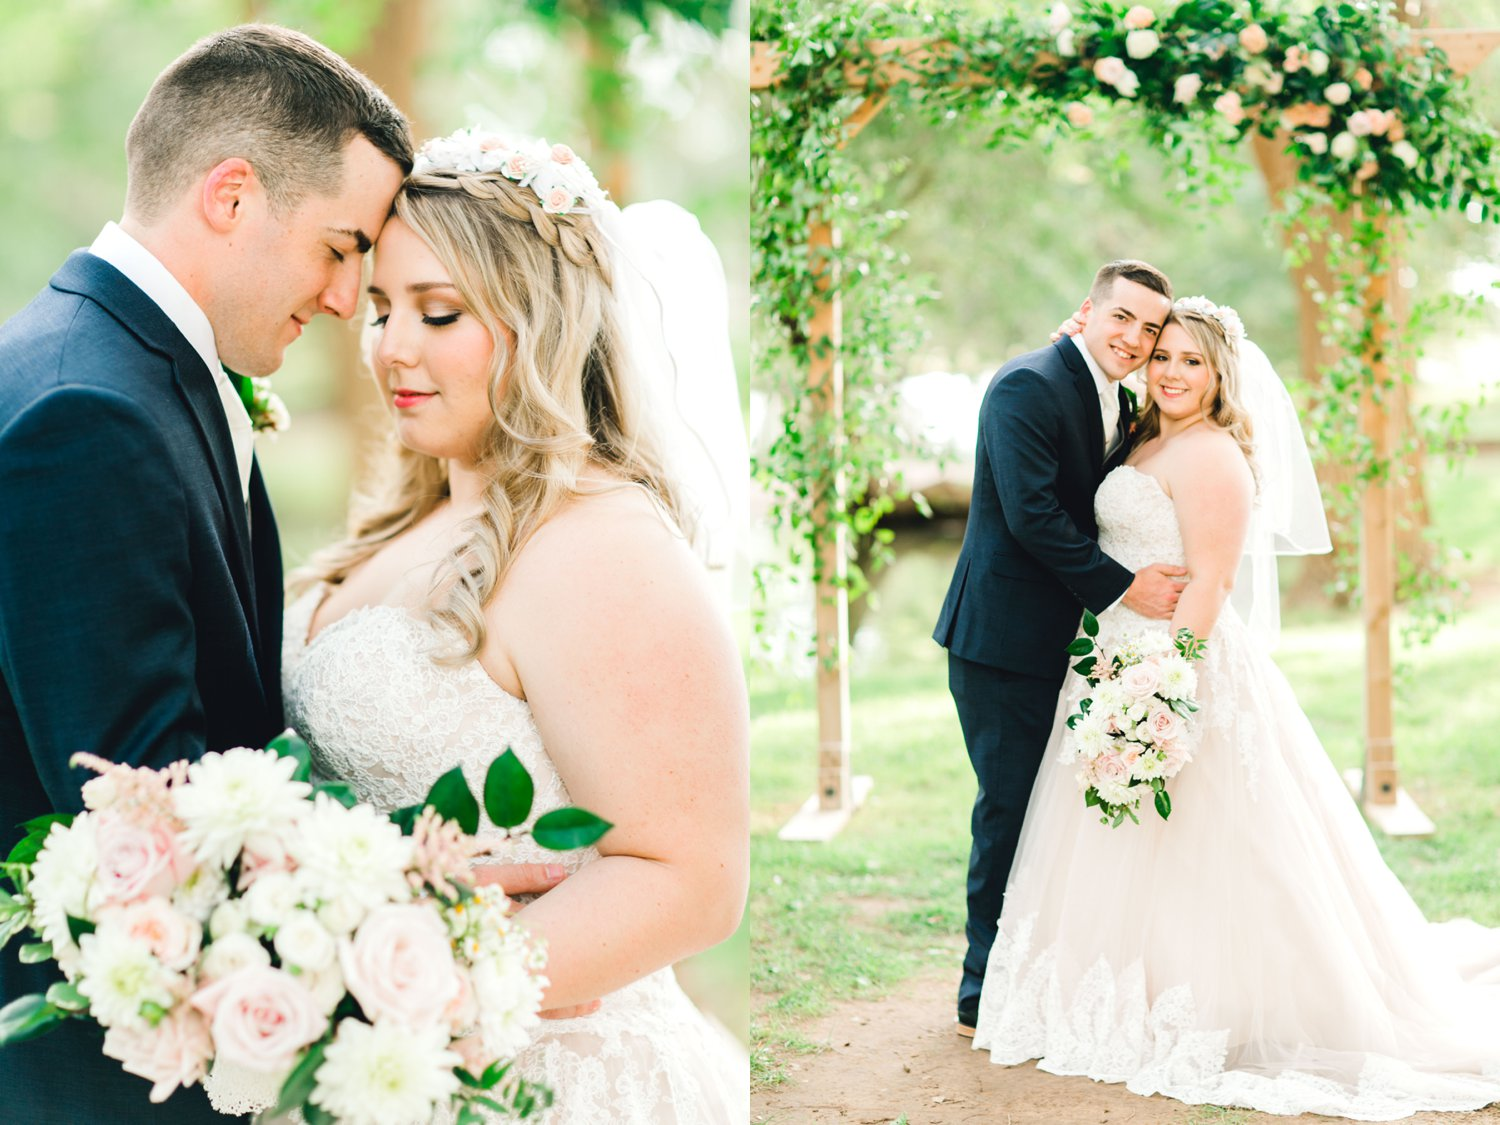 SARAH_AND_GEOFFREY_SHARP_SPIRIT_RANCH_WEDDING_ALLEEJ_LUBBOCK_TX_0098.jpg